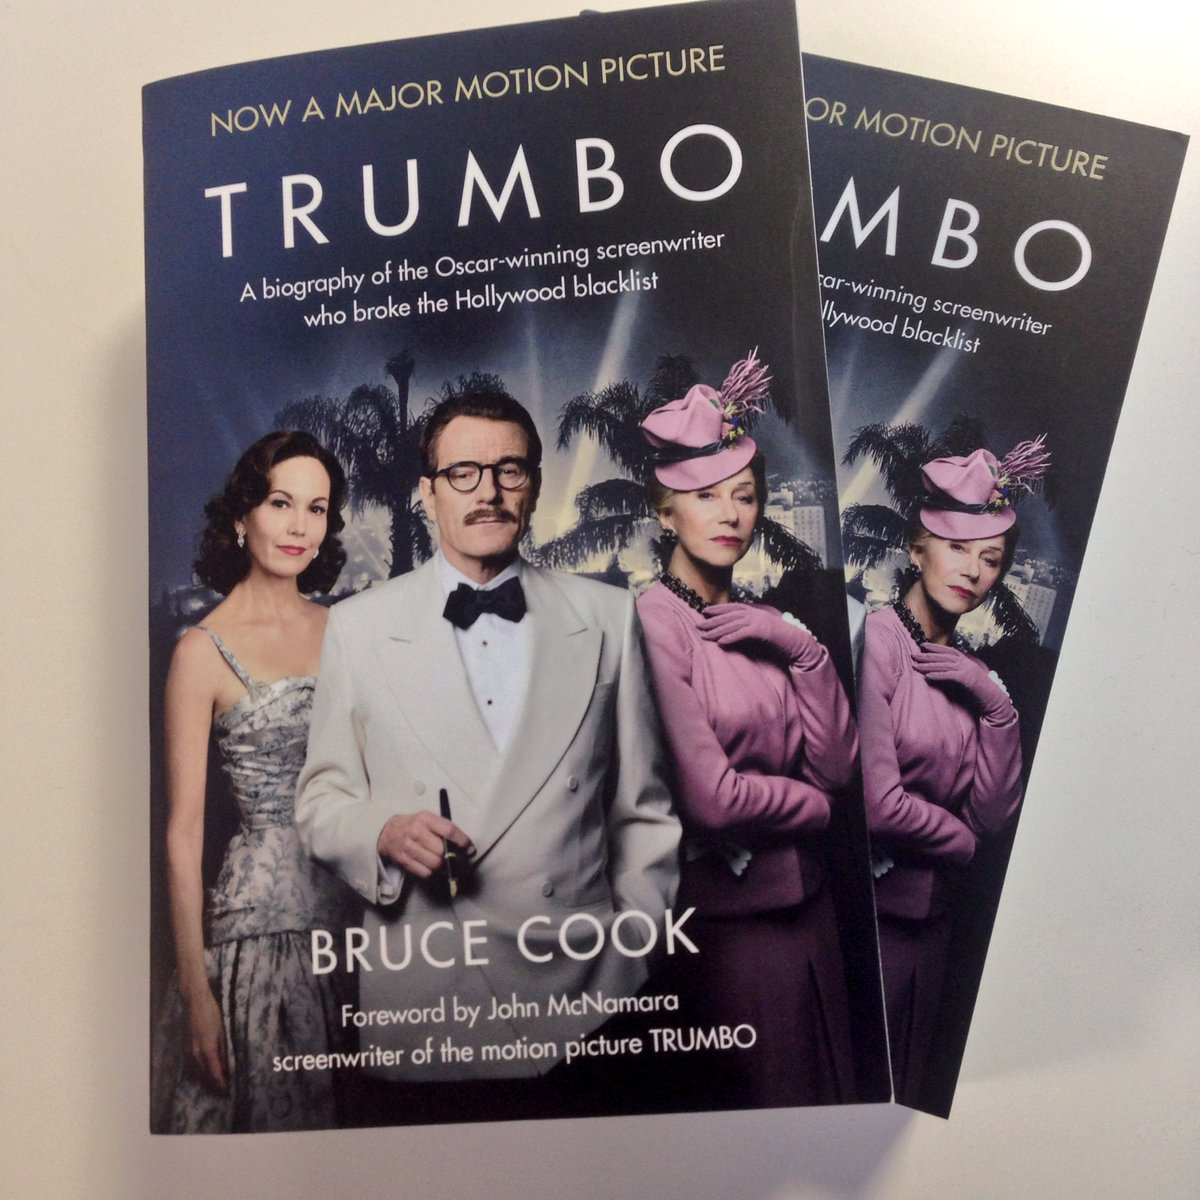 Want to win a #Trumbo book? The story behind the film! RT to win. https://t.co/v1dtZv747i